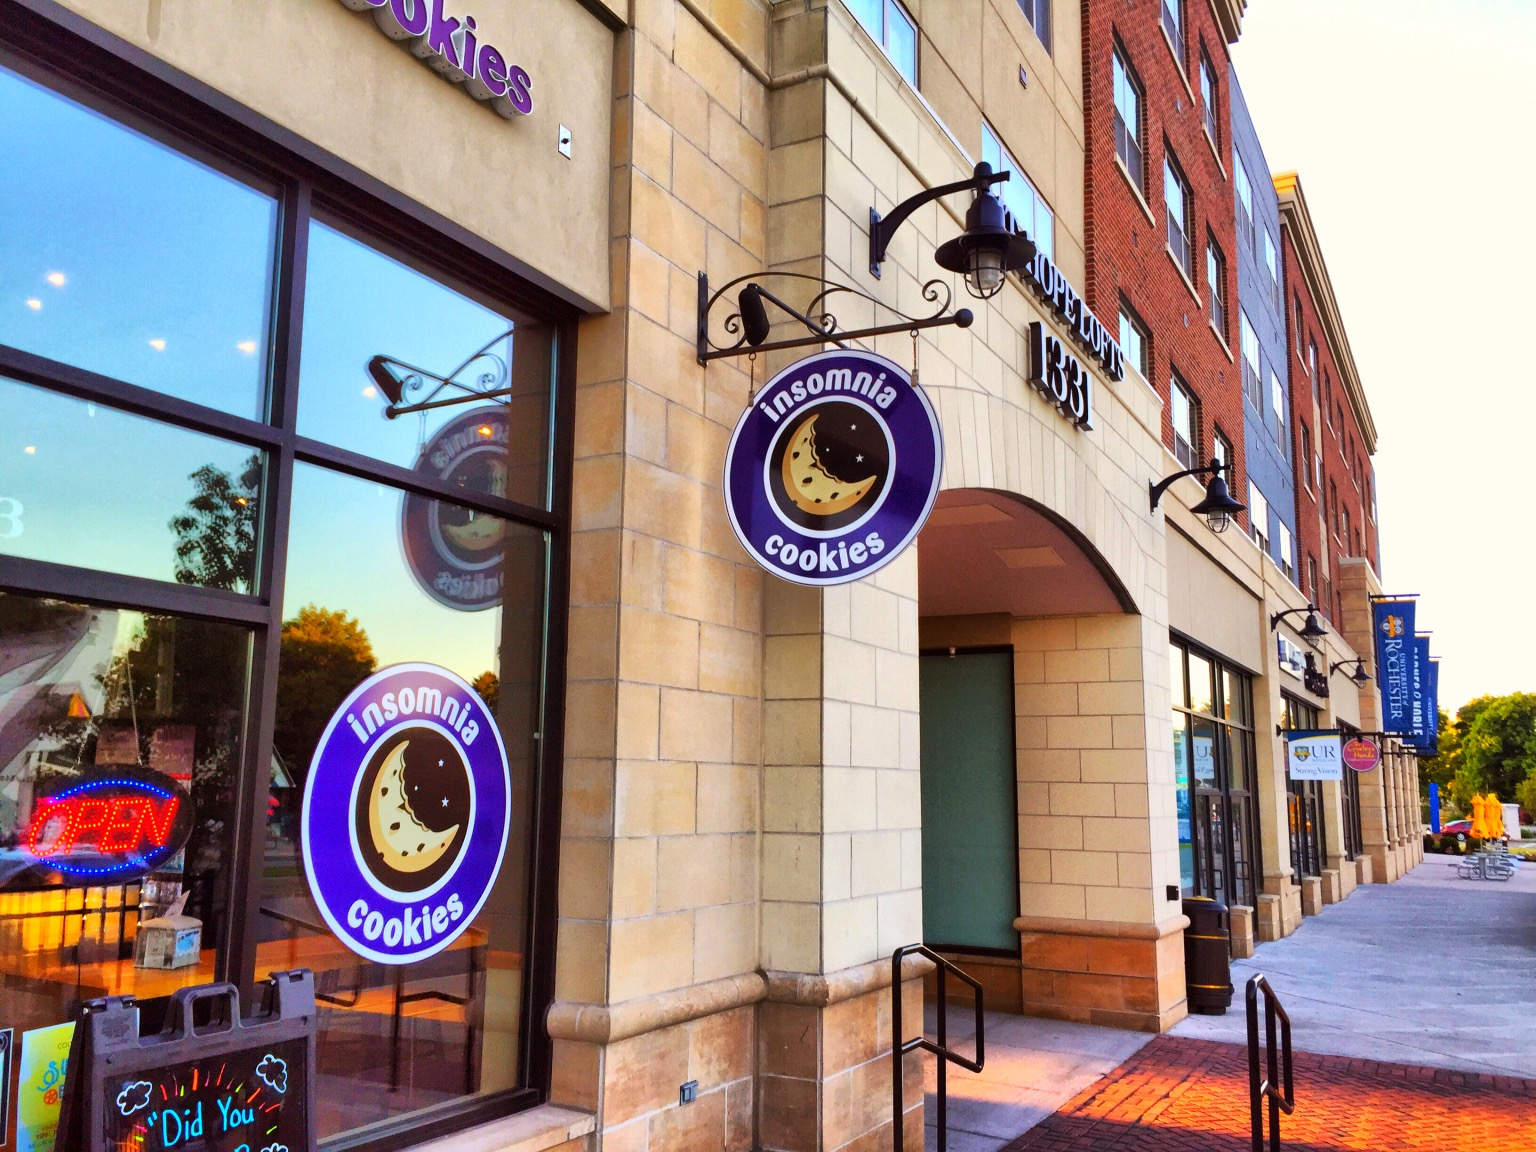 Insomnia Cookies is one of several chains that populate College Town.